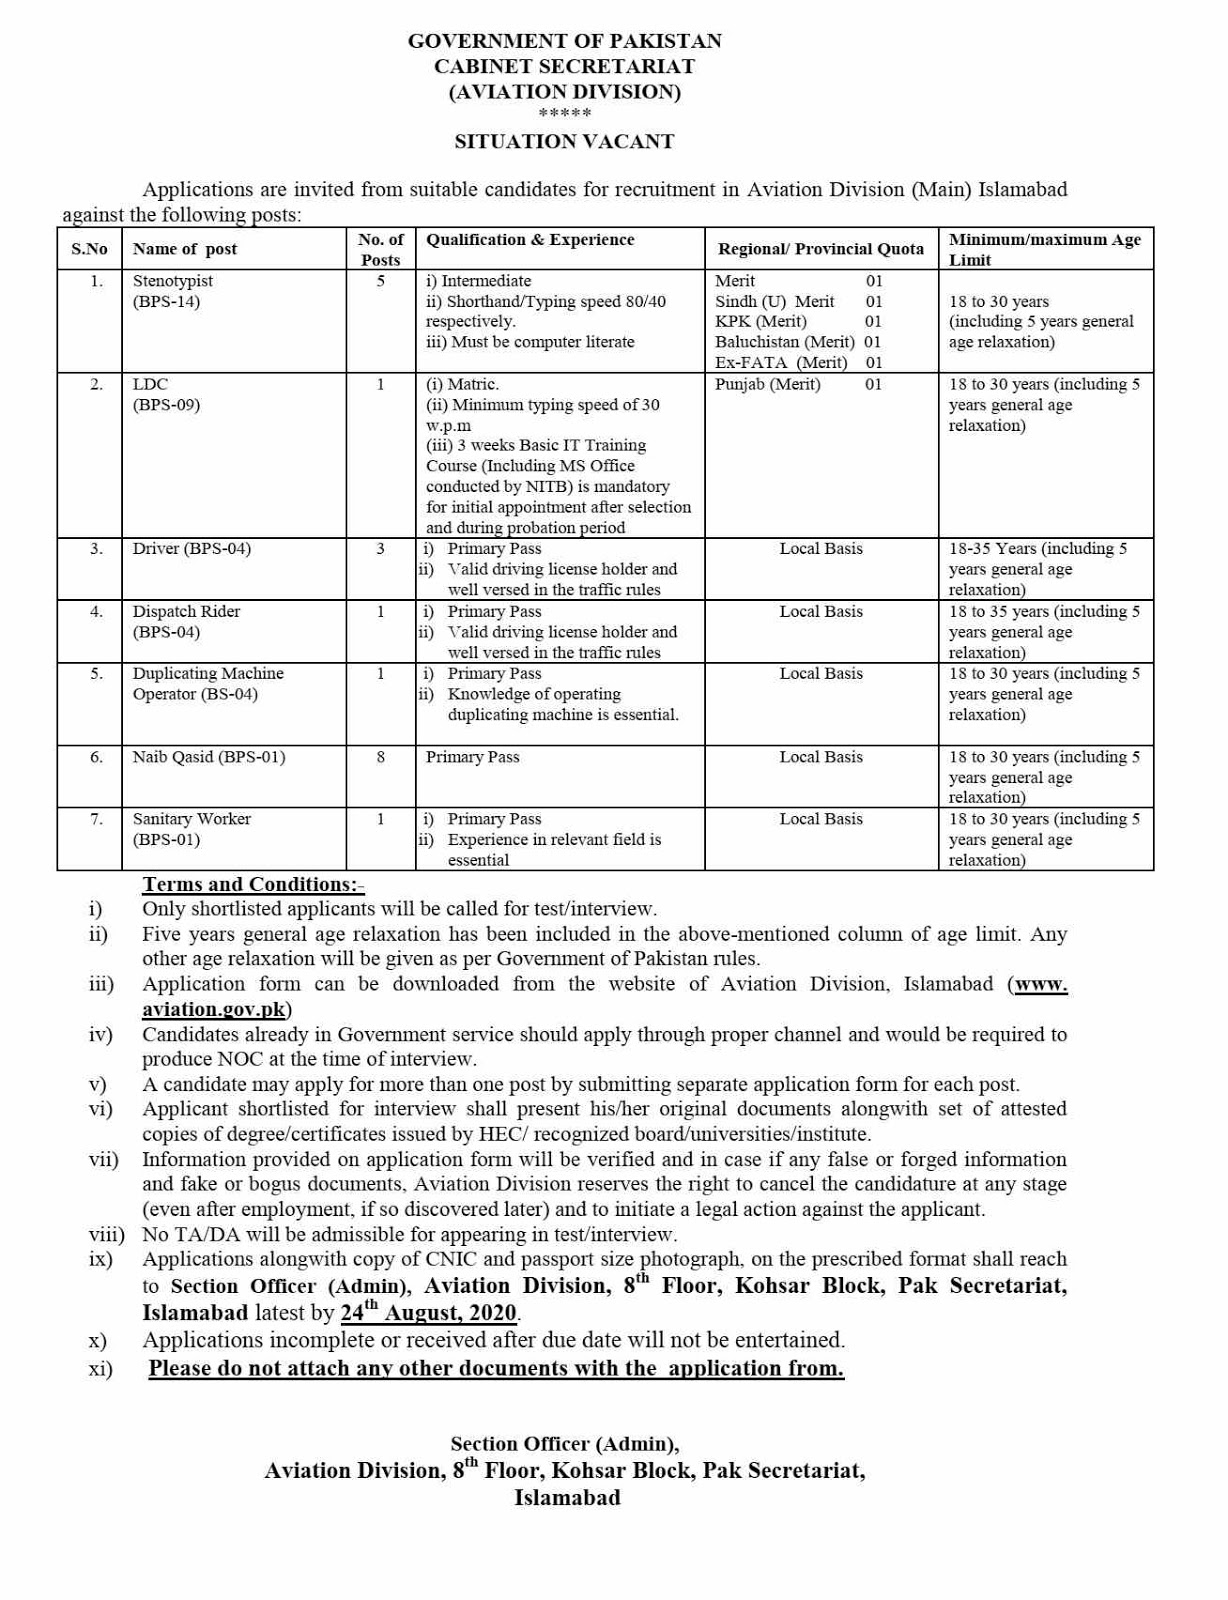 Cabinet Secretariat Aviation Division Jobs 2020 for Steno Typist, Lower Division Clerk LDC & more